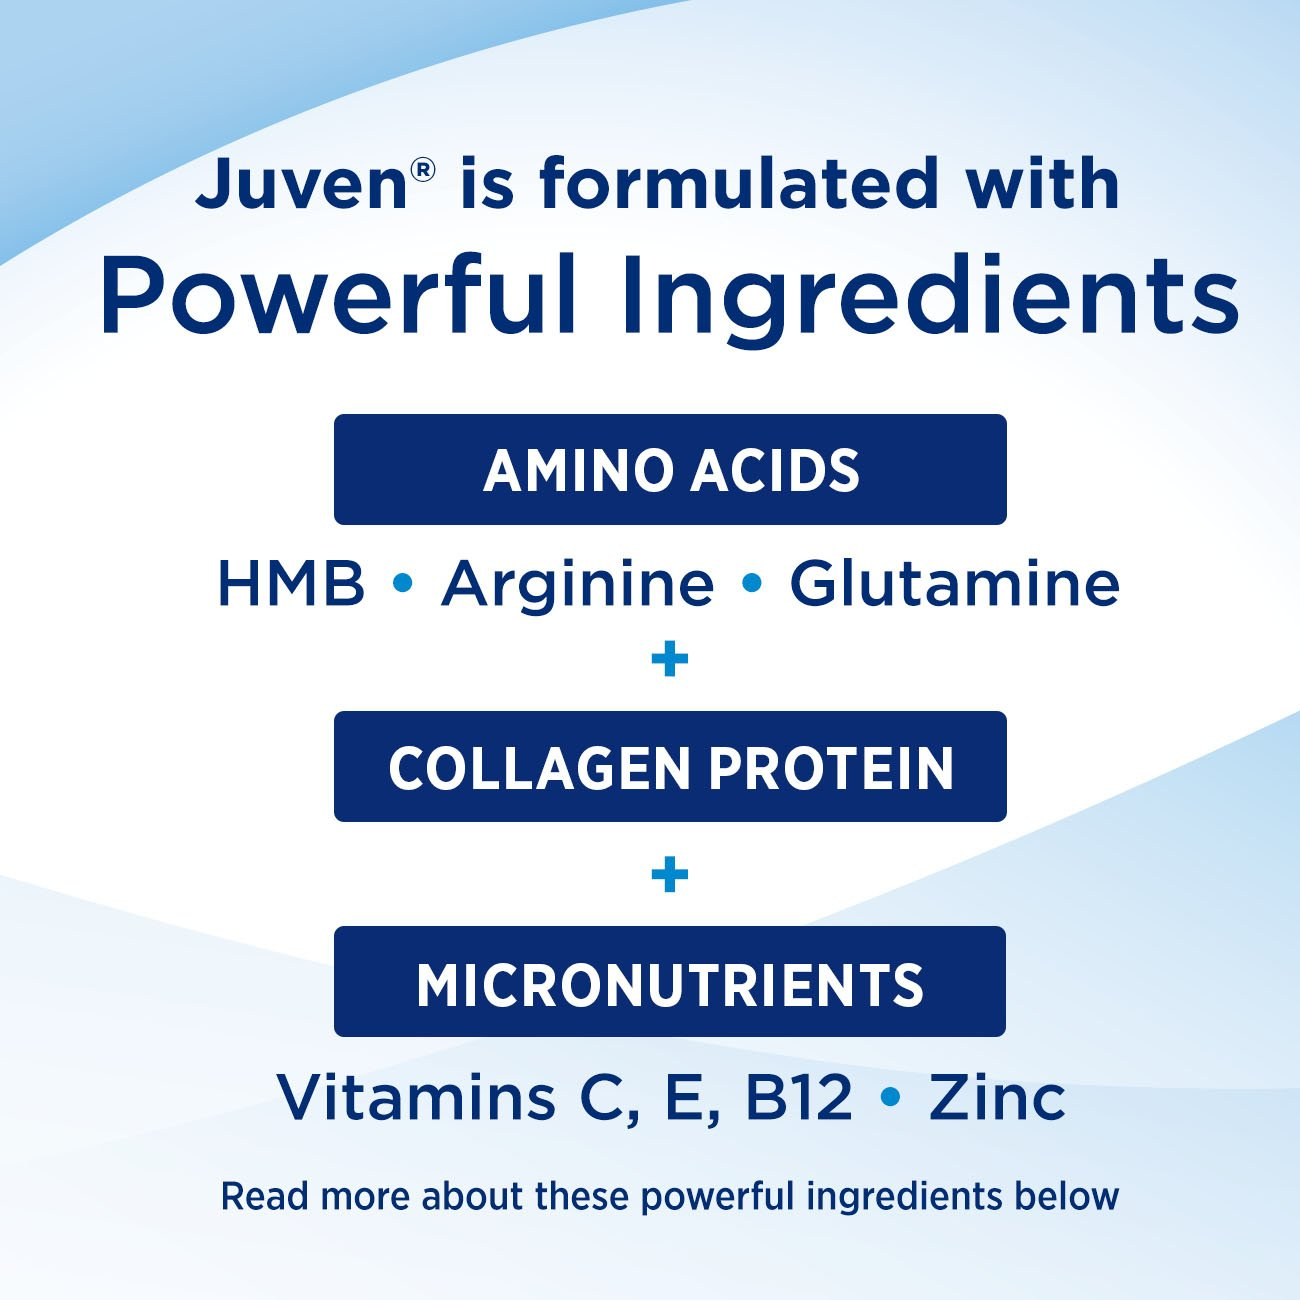 Juven Therapeutic Nutrition Drink Mix Powder for Wound Healing Includes Collagen Protein, Unflavored, 30 Count by Juven (Image #4)